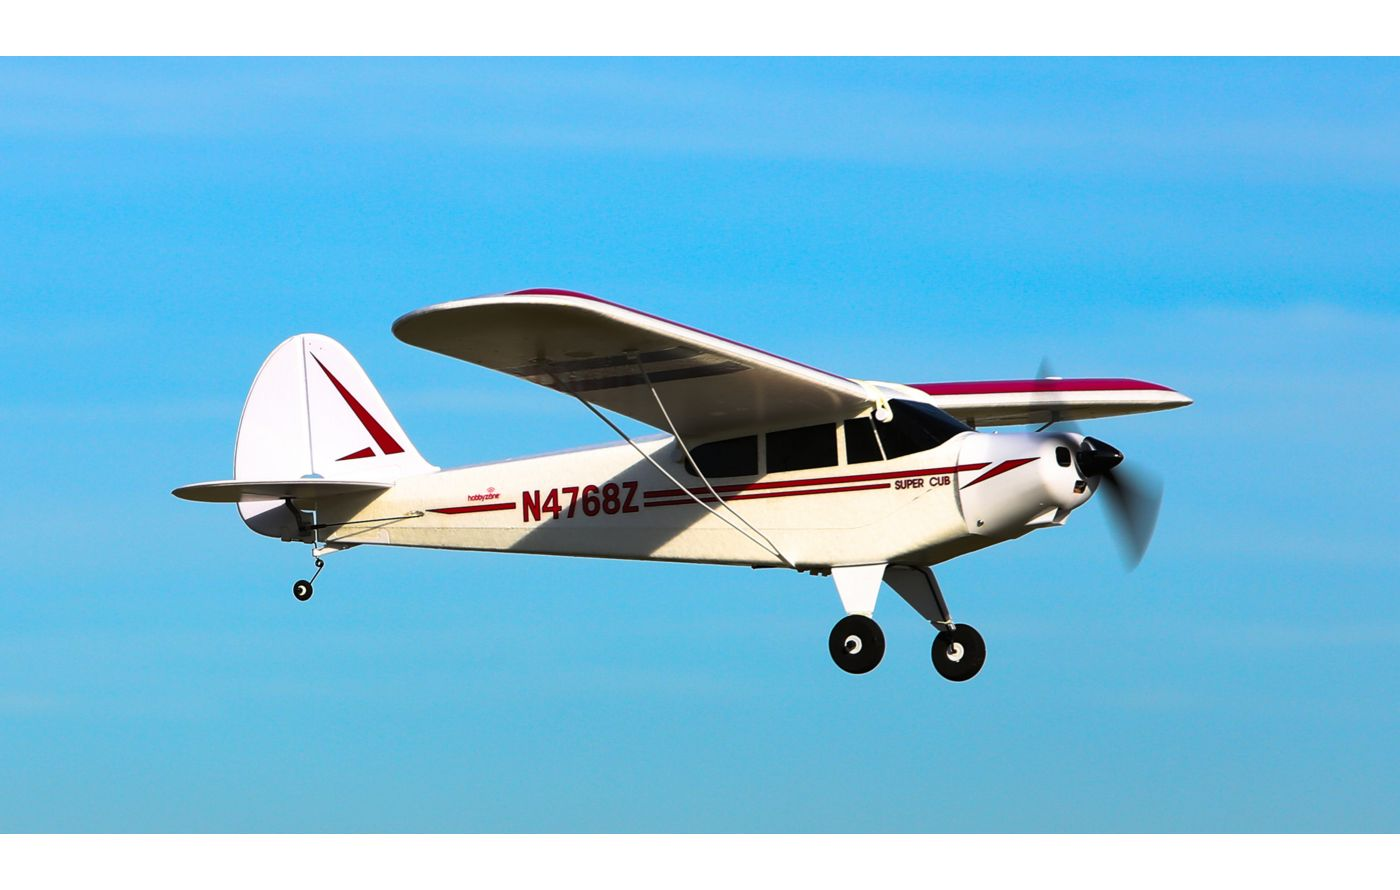 Image for Super Cub S 1.2m RTF with SAFE from Force RC